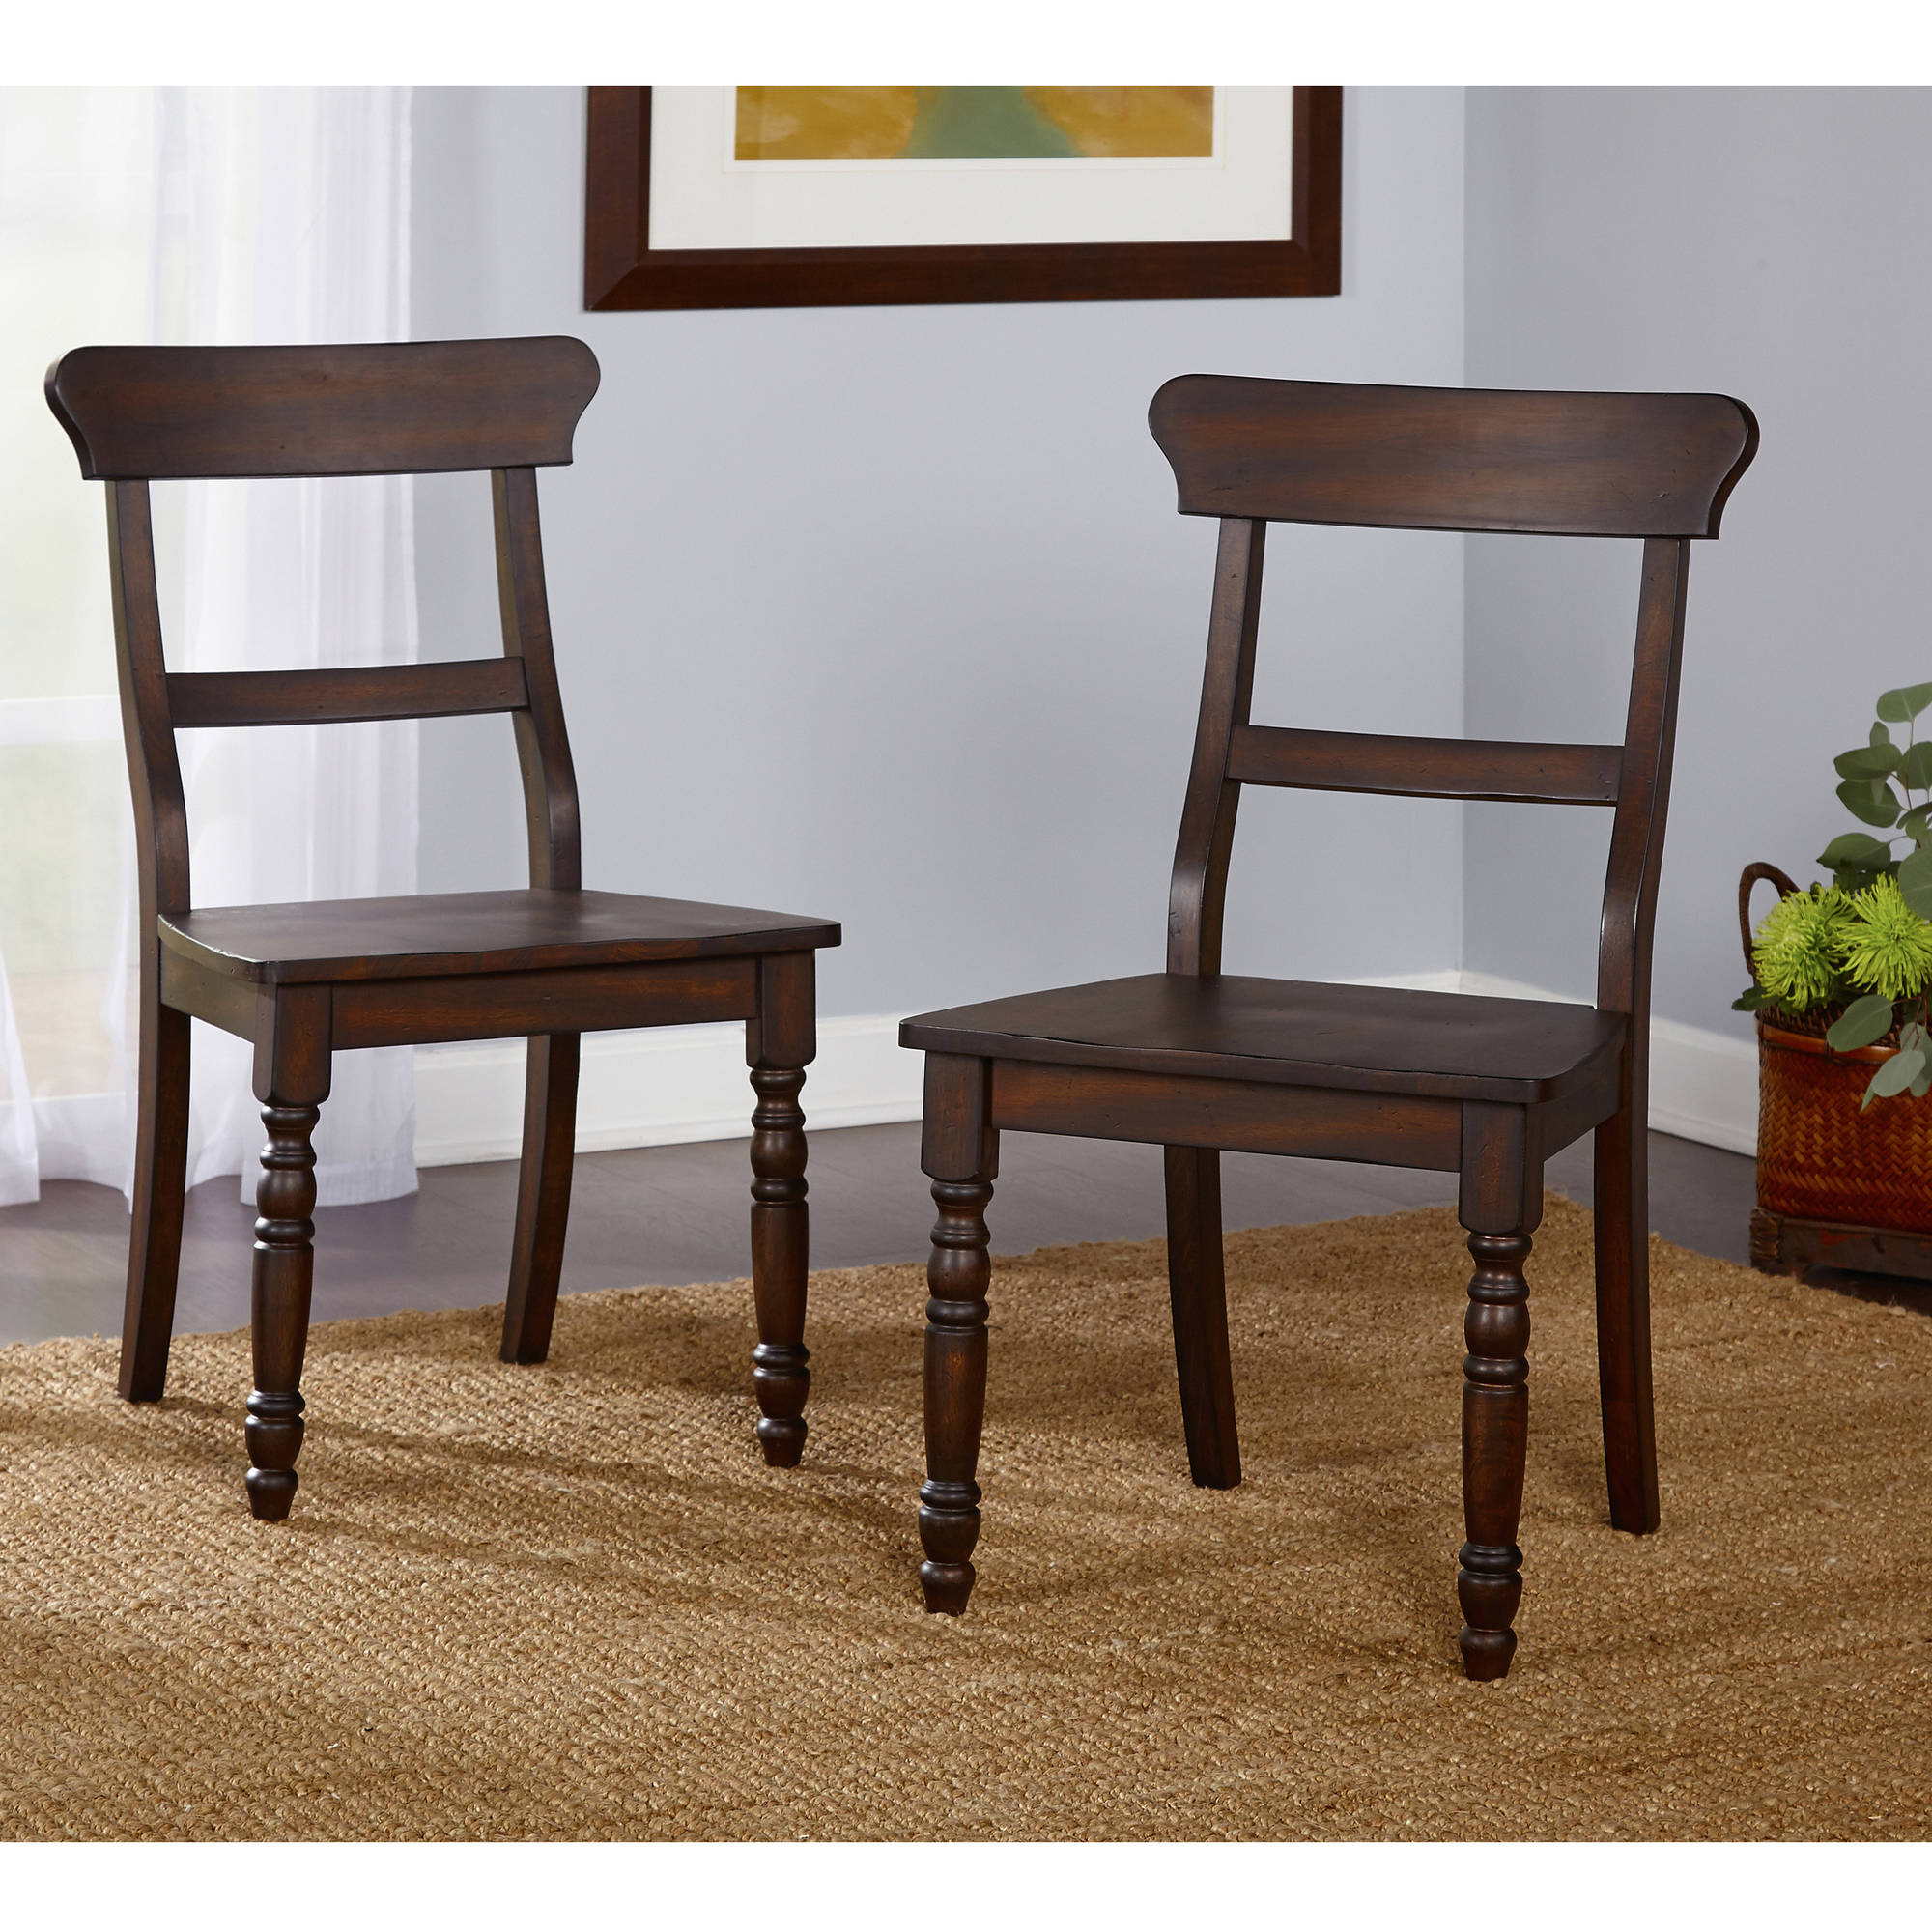 Muses Dining Chair, Set of 2, Weathered Walnut - Walmart.com